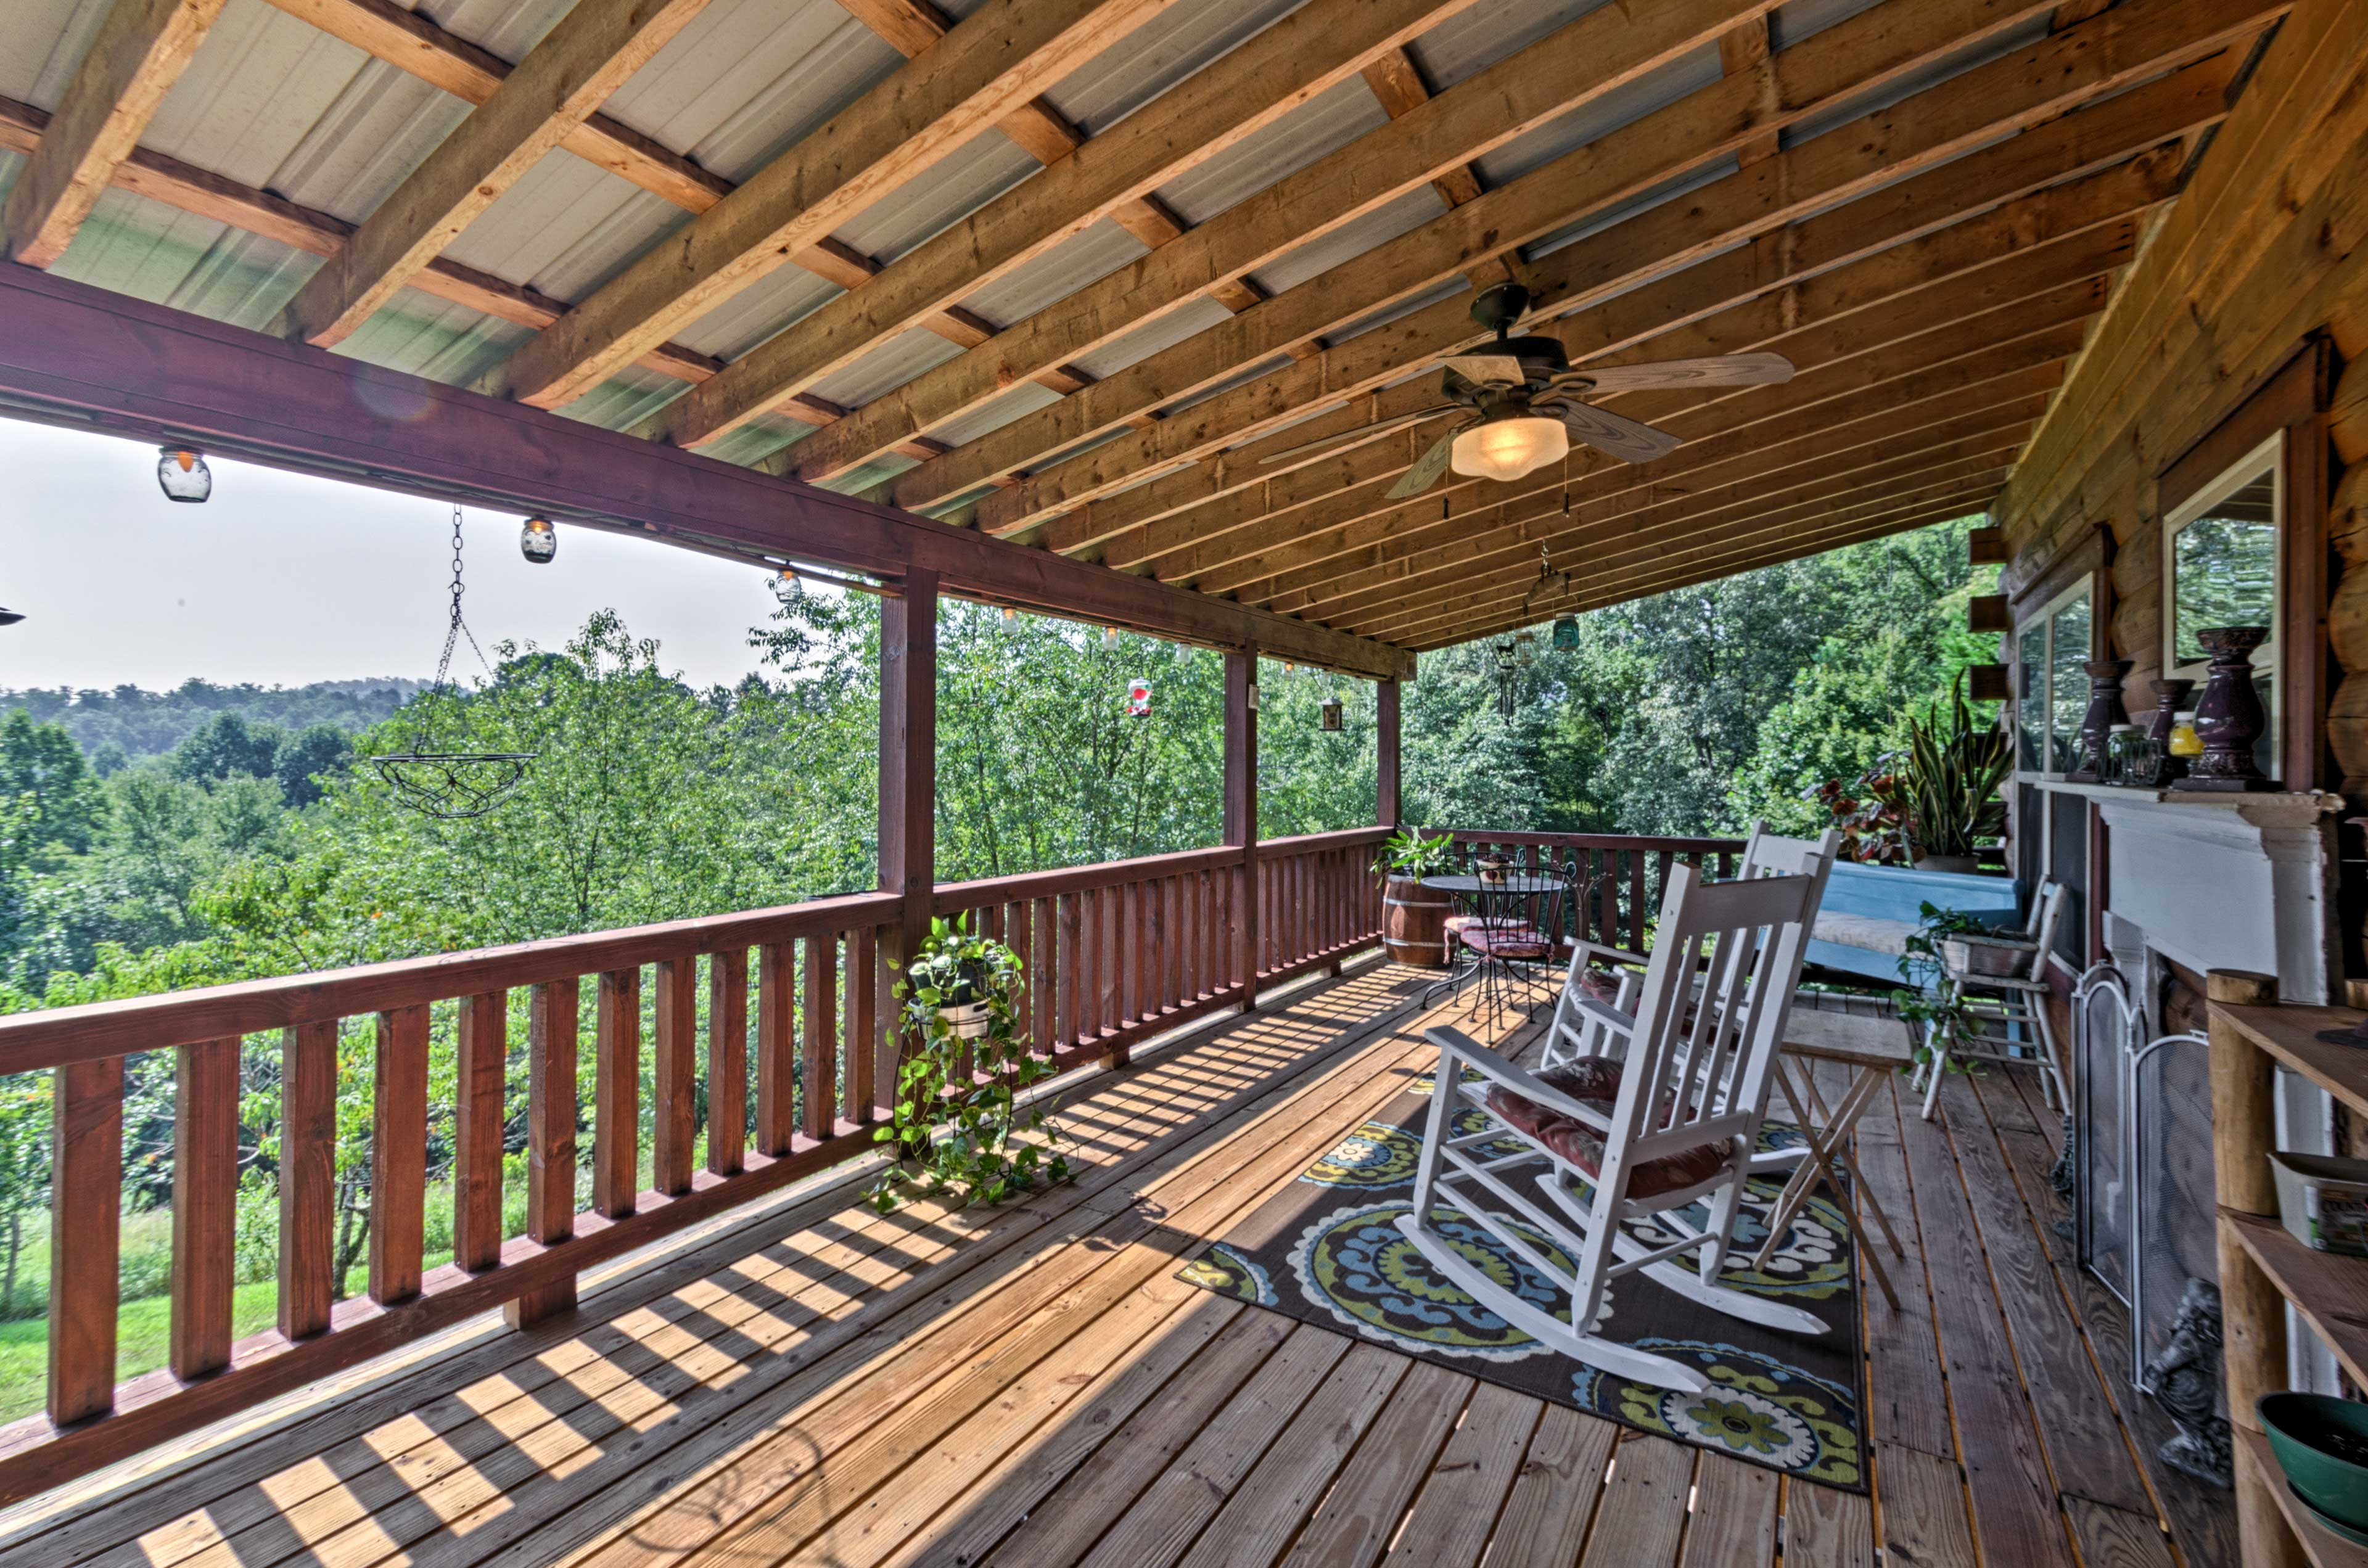 This lovely property is nestled on 3 acres offering 3 bedrooms and 2 bathrooms.